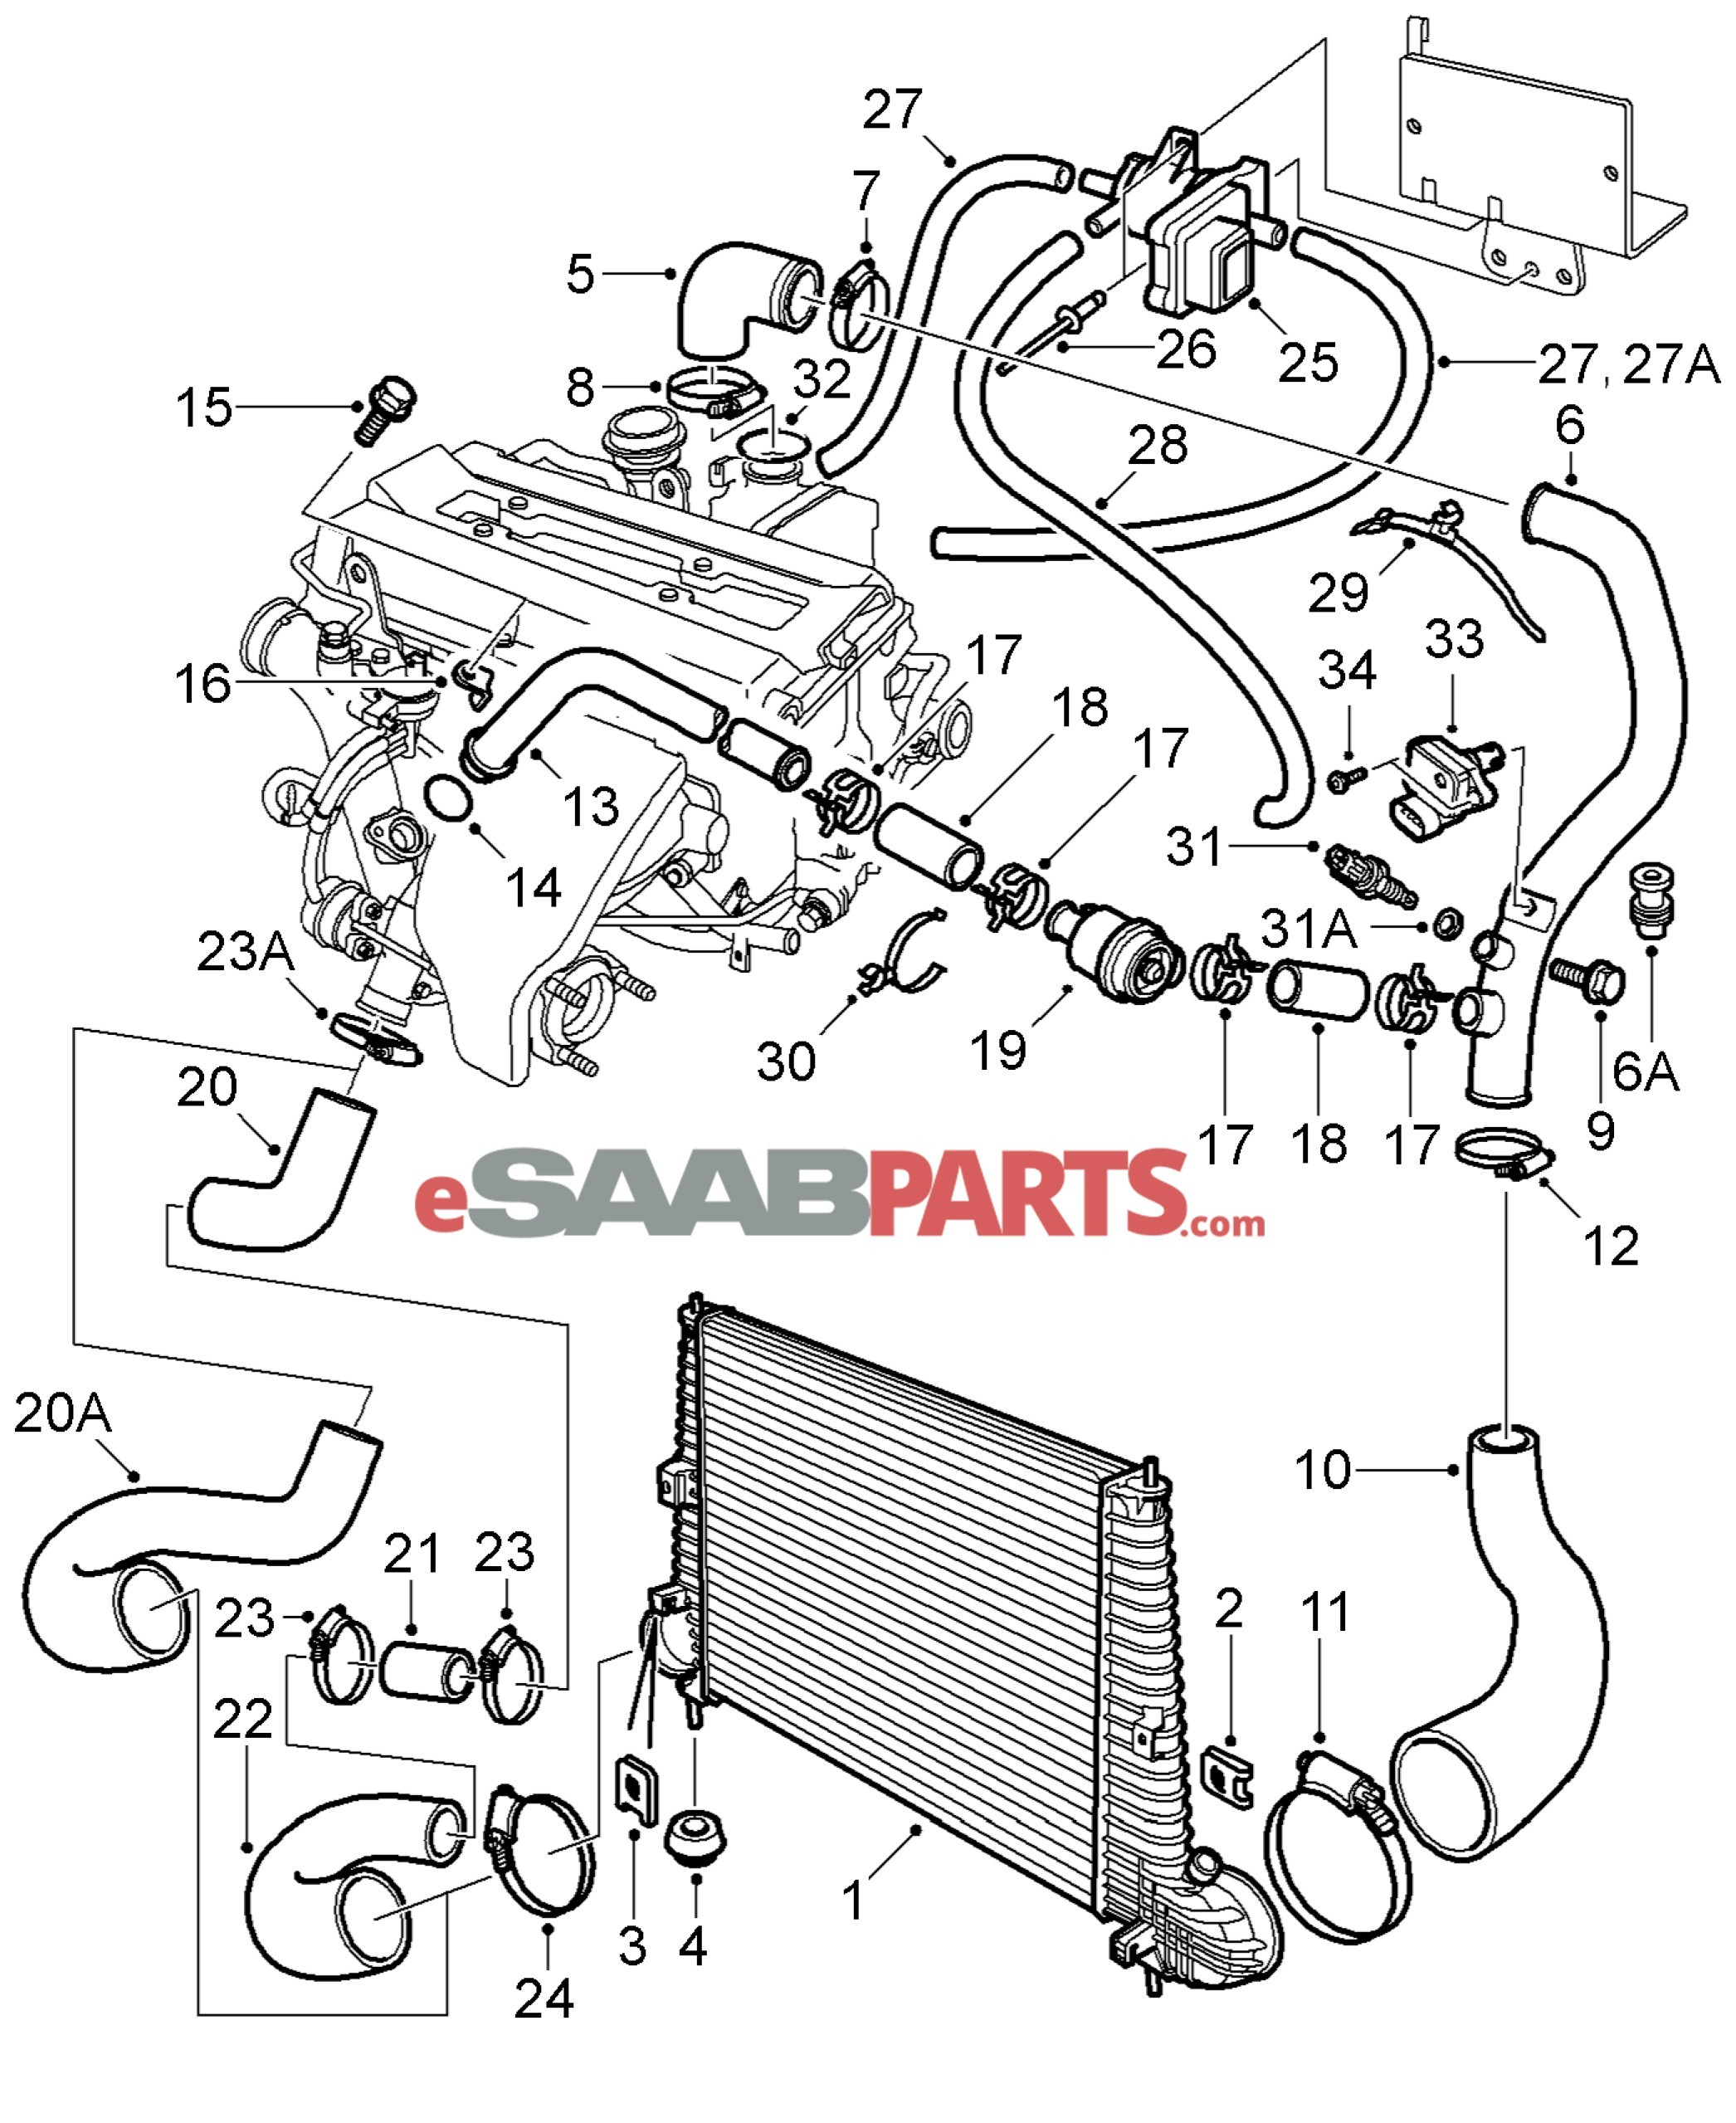 Saab 9 5 Engine Diagram 2 Cool Review About 2005 Saab 9 3 Convertible with Mesmerizing S Of Saab 9 5 Engine Diagram 2